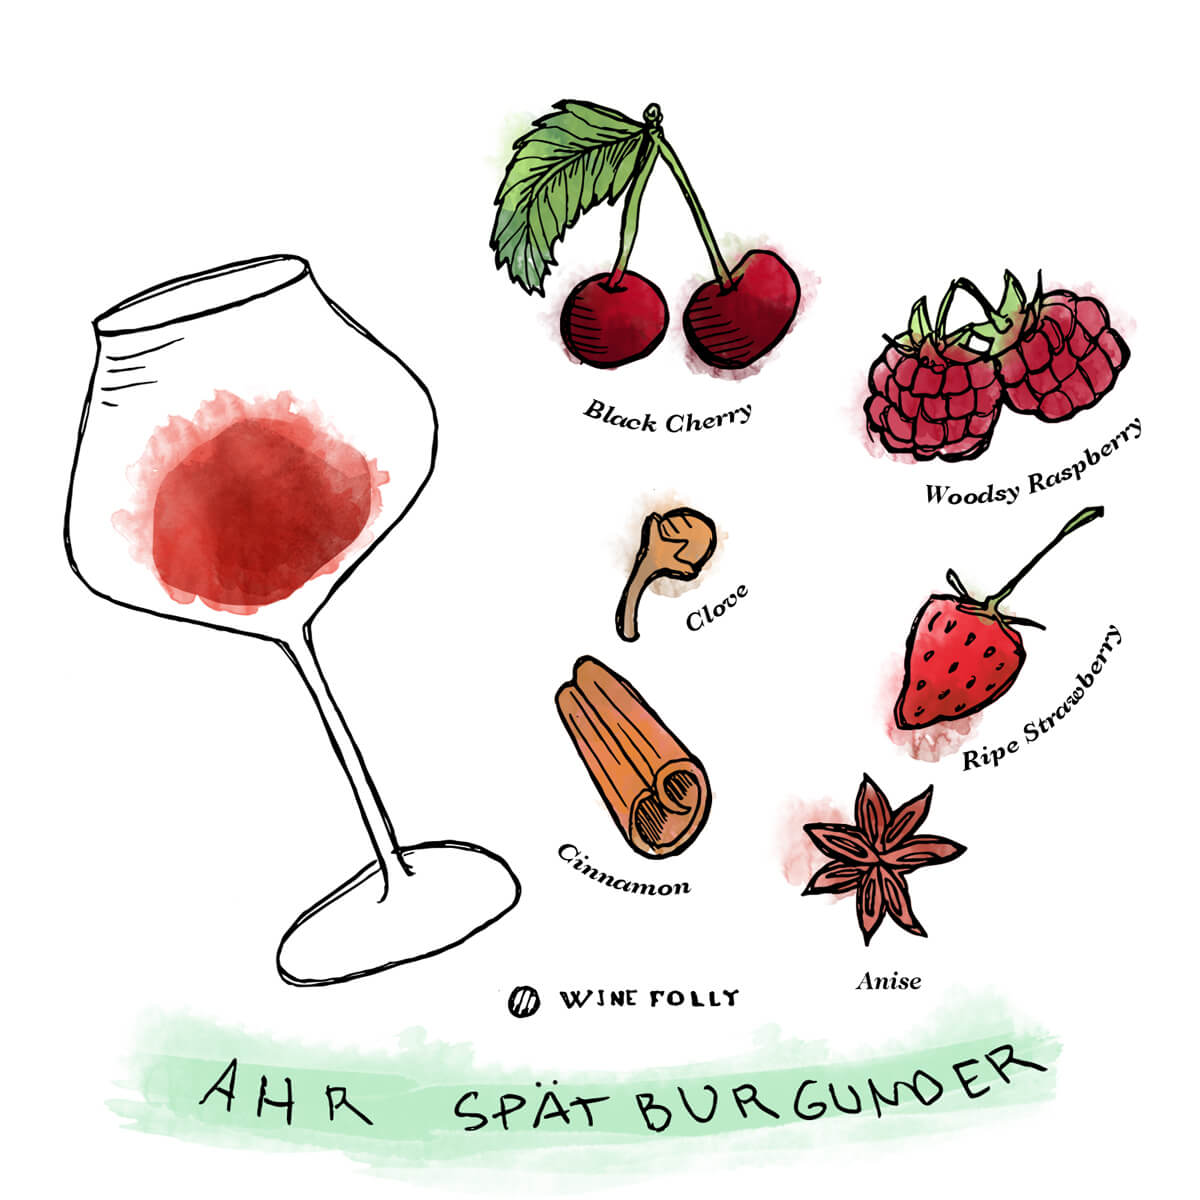 Ahr-Pinot-Noir-Spatburgunder-Tasting-Notes-WineFolly-Illustration